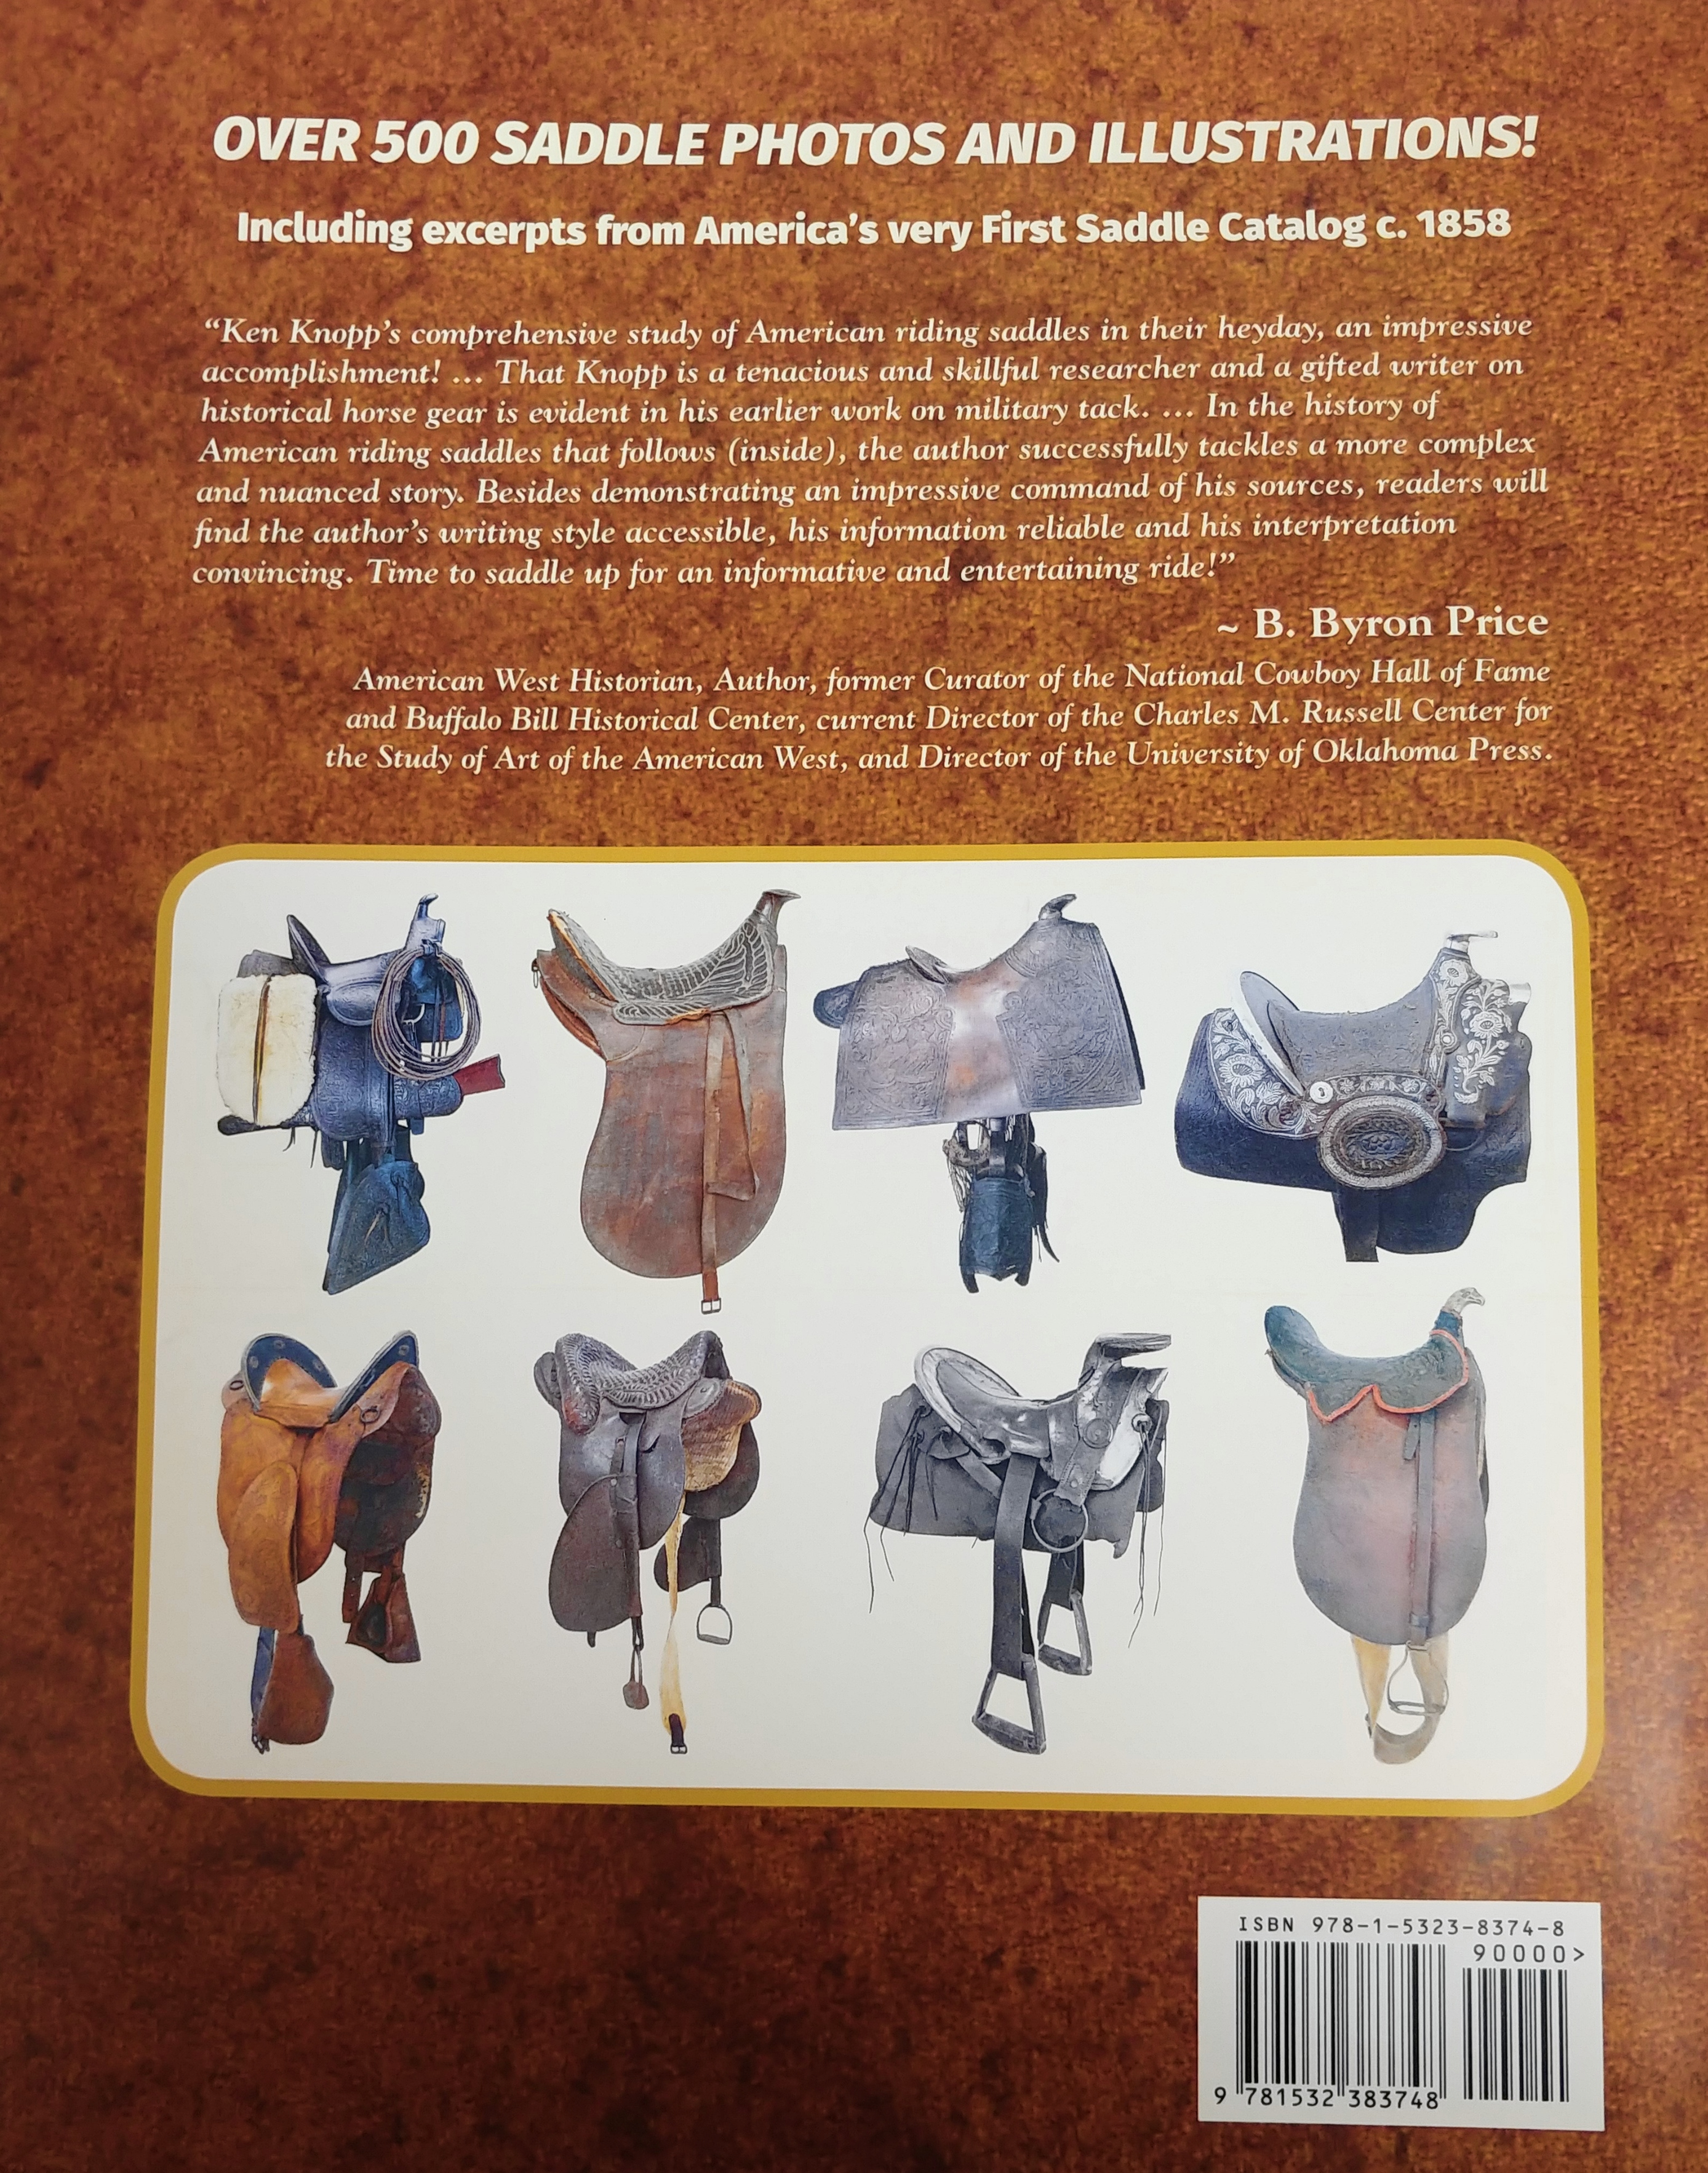 American Riding and Work Saddles (and Horse Culture), 1790-1920